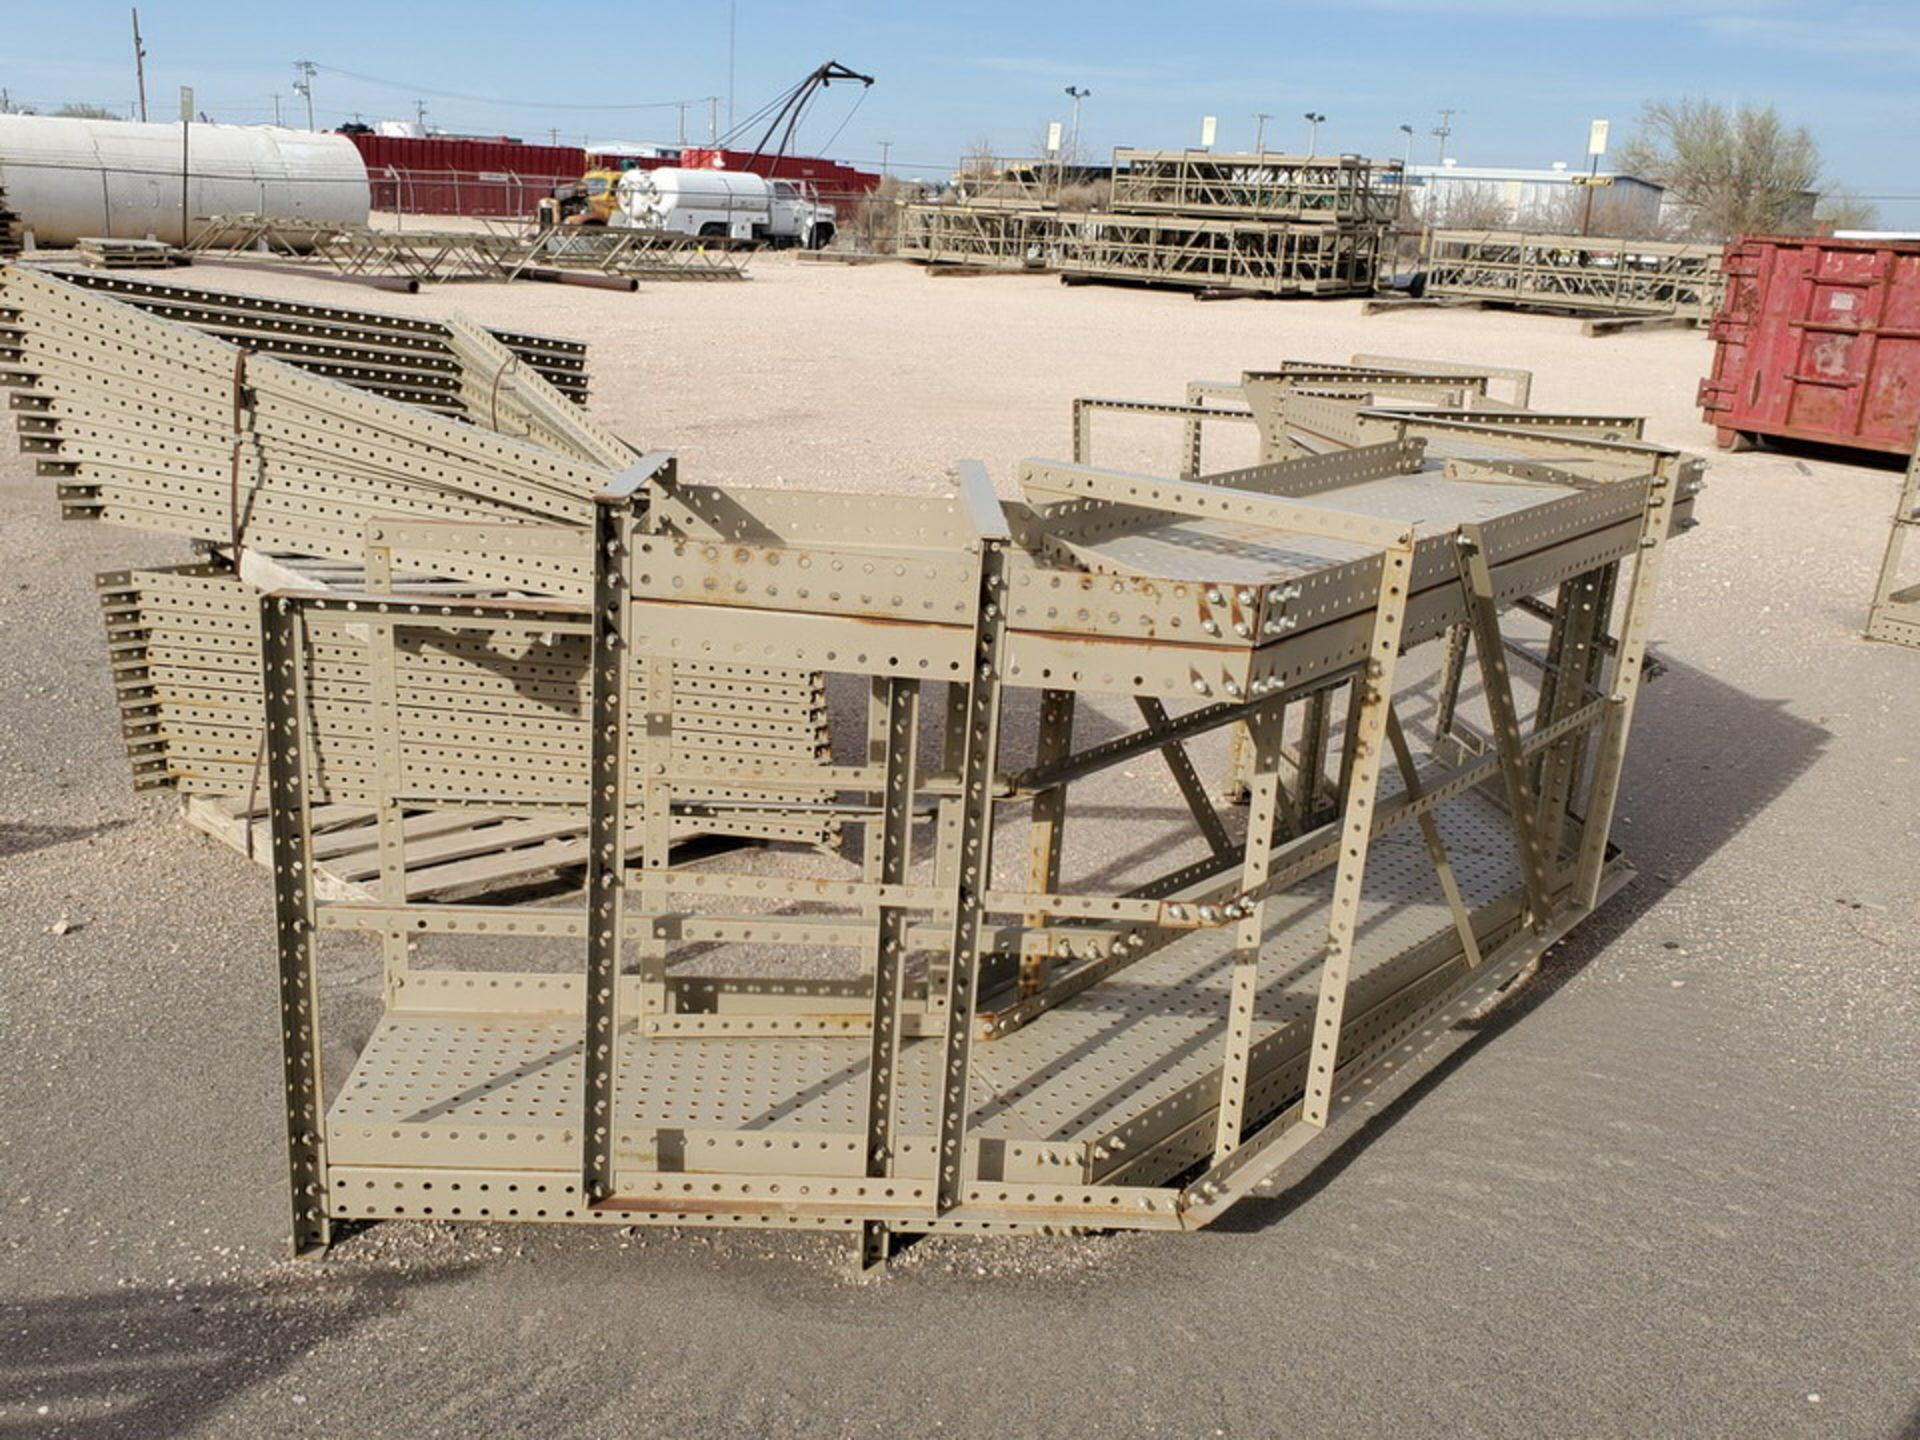 Disassembled Catwalk Sections - Image 16 of 20